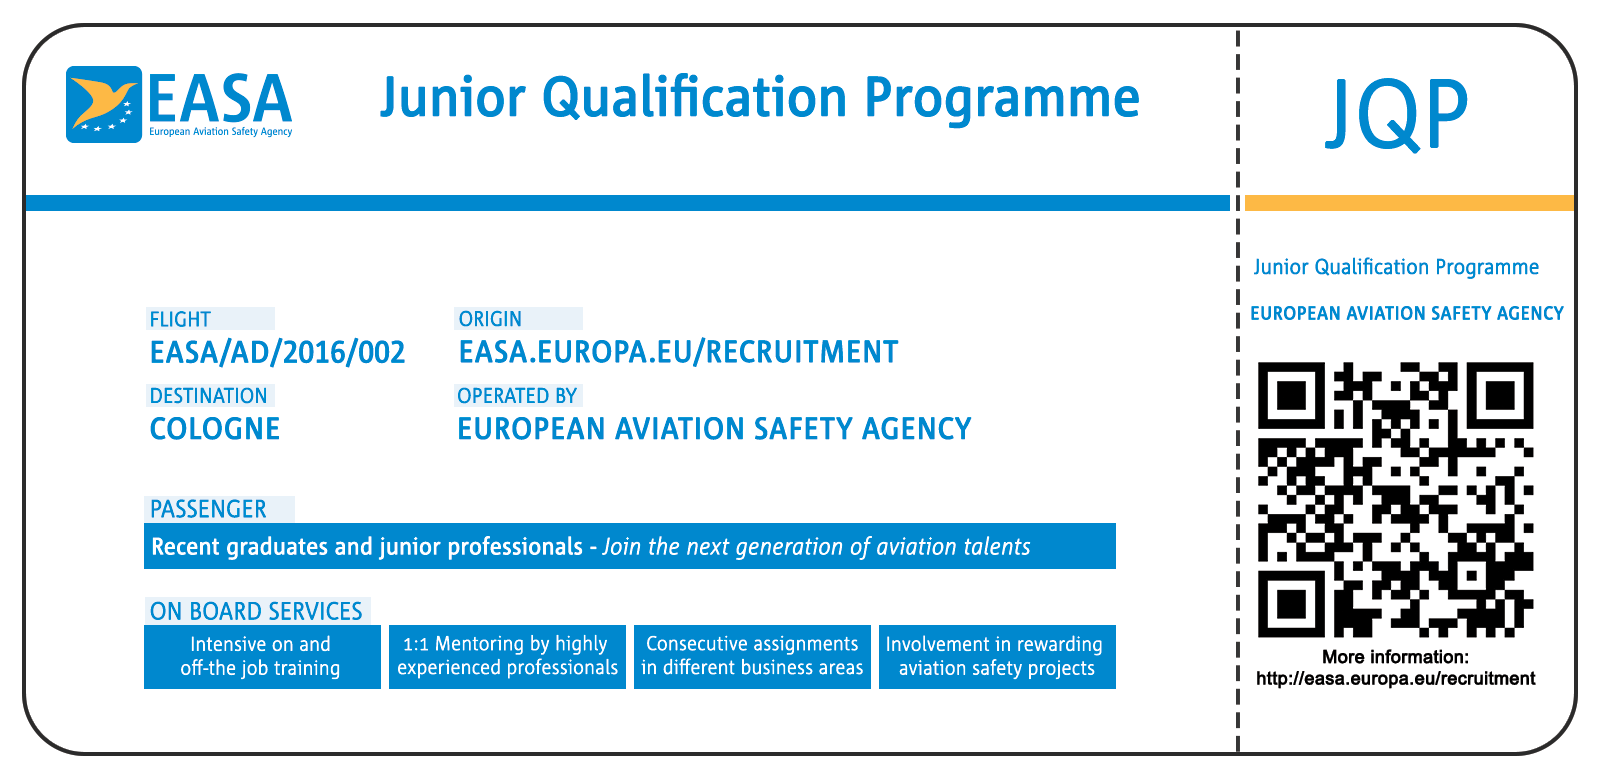 Junior Qualification Programme (JQP) - Boarding pass